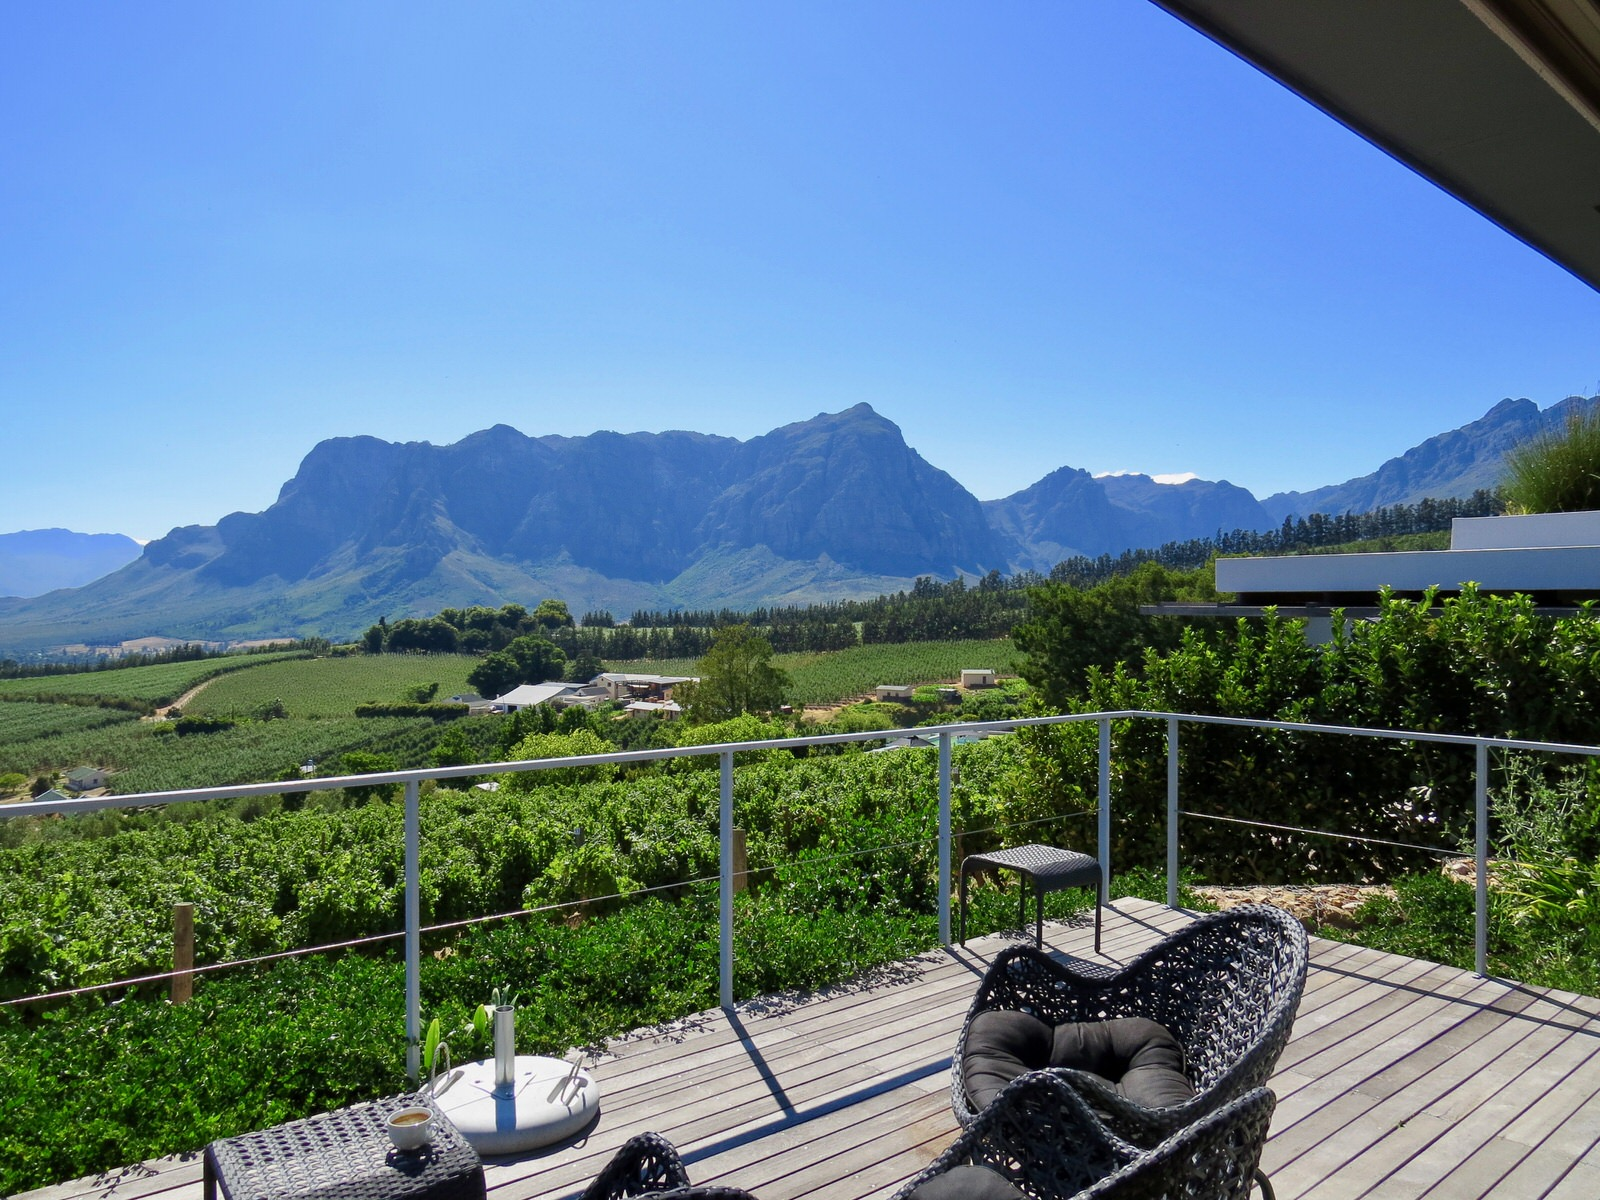 Cloud Estate hotel in Stellenbosch